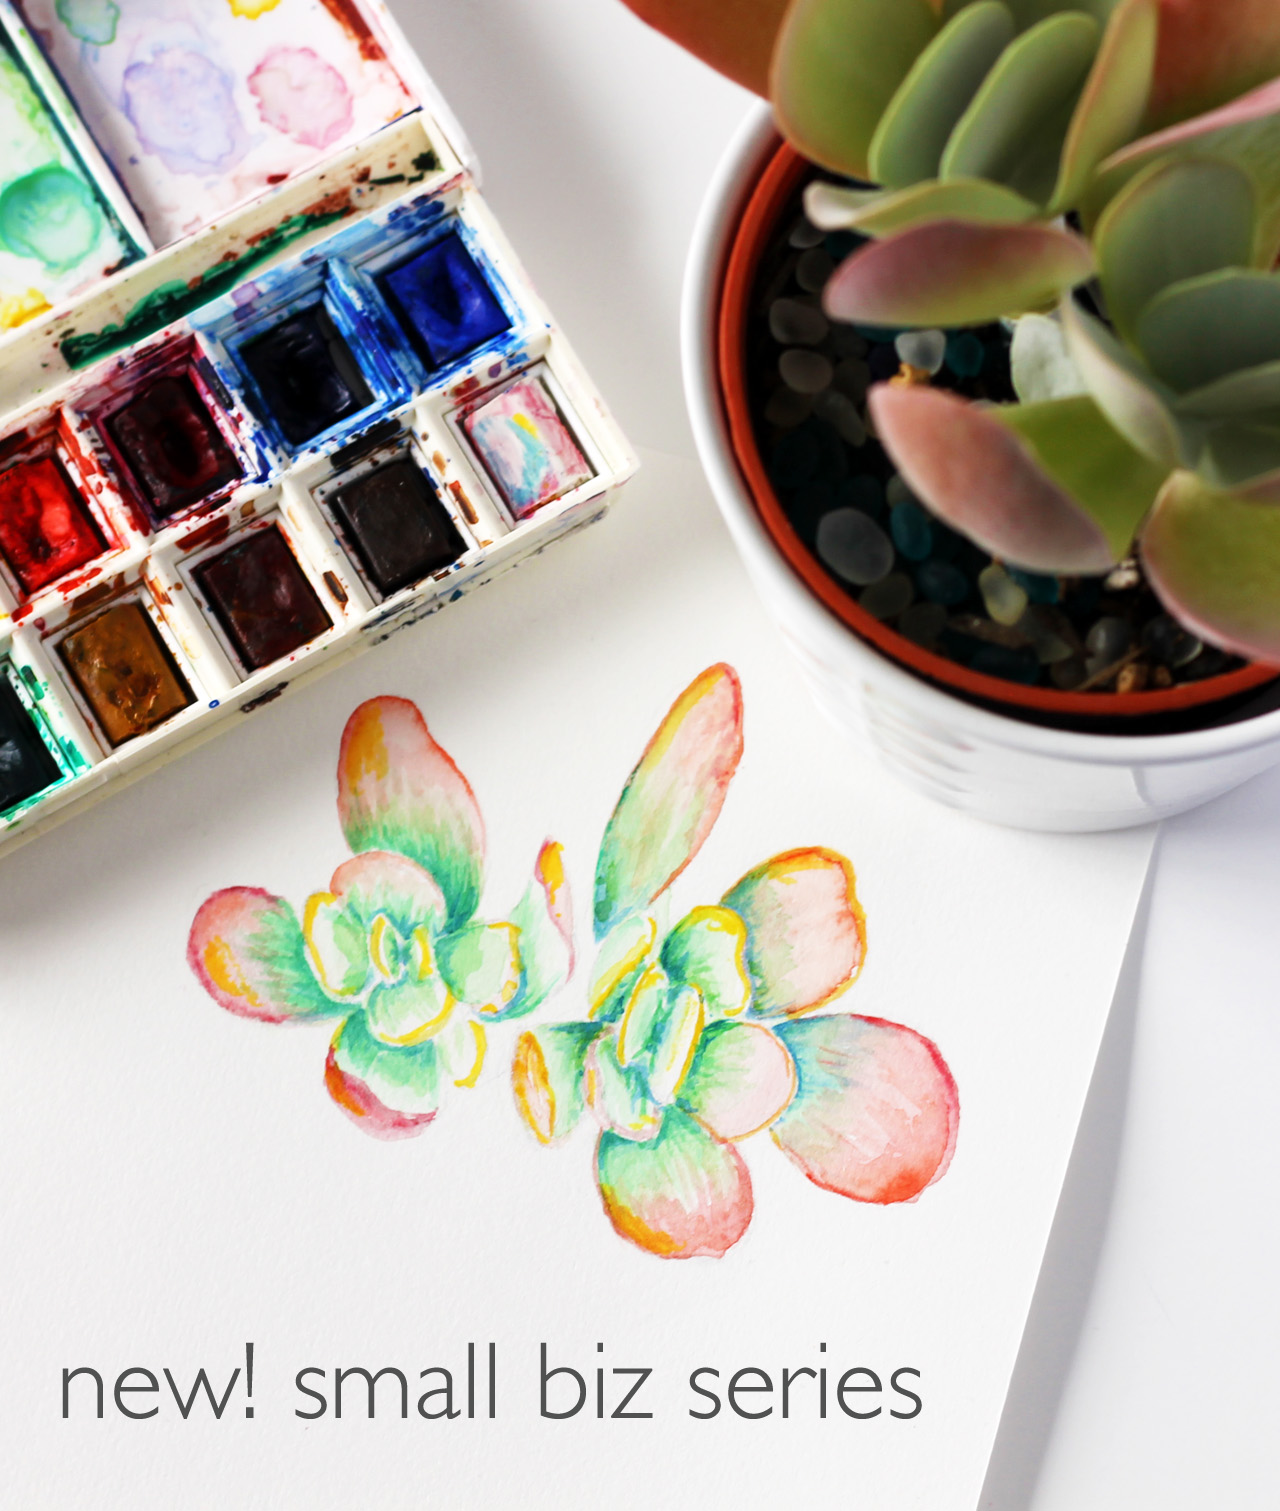 Small Biz Series by Vitamini Handmade